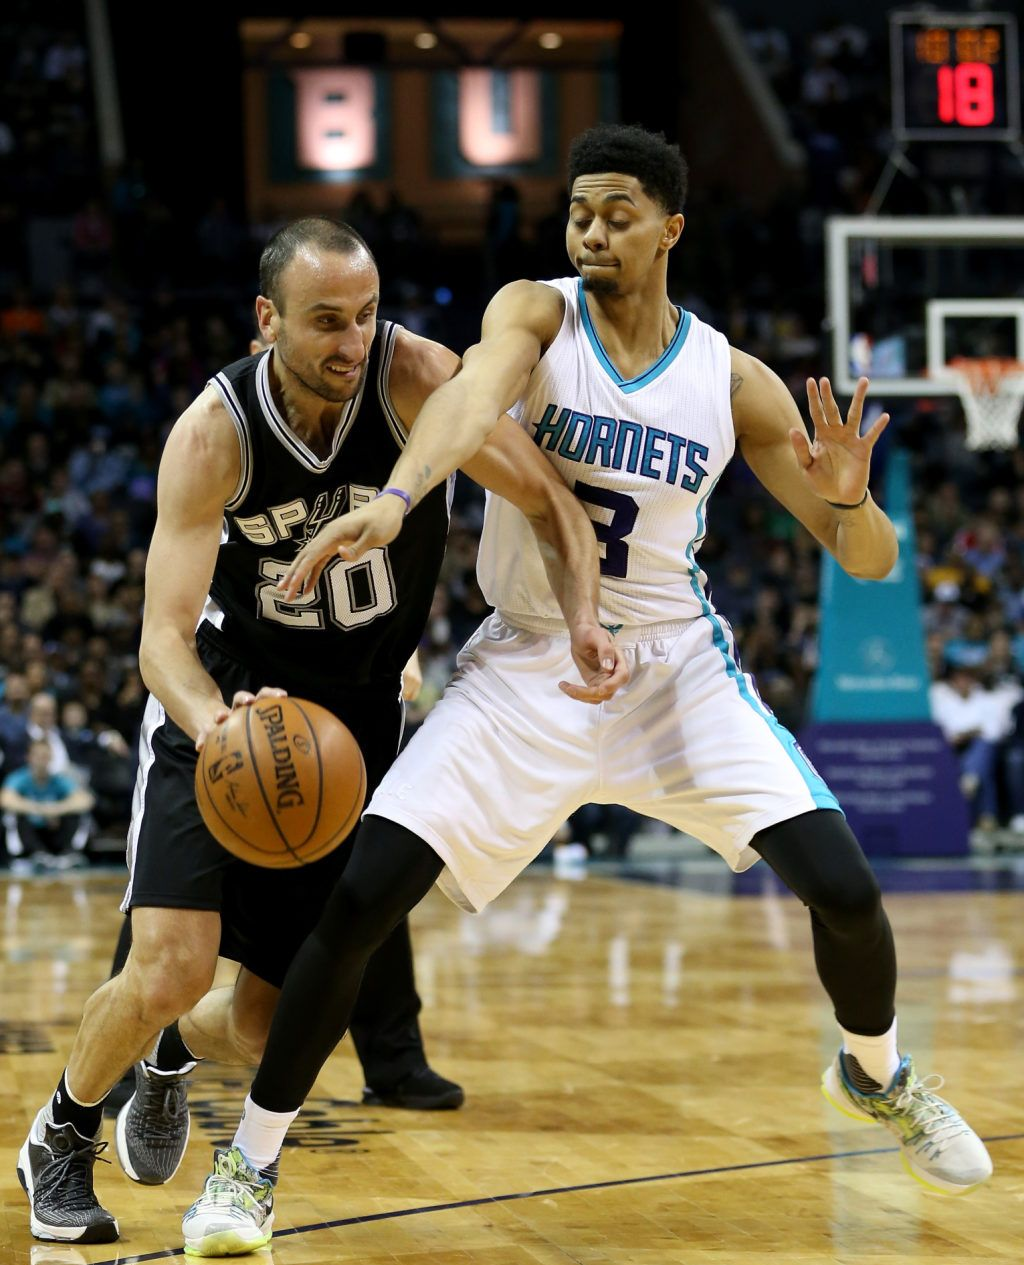 a7b1389d71d2 new style manu ginobili and jeremy lamb in a nike kd 8 id and the nike